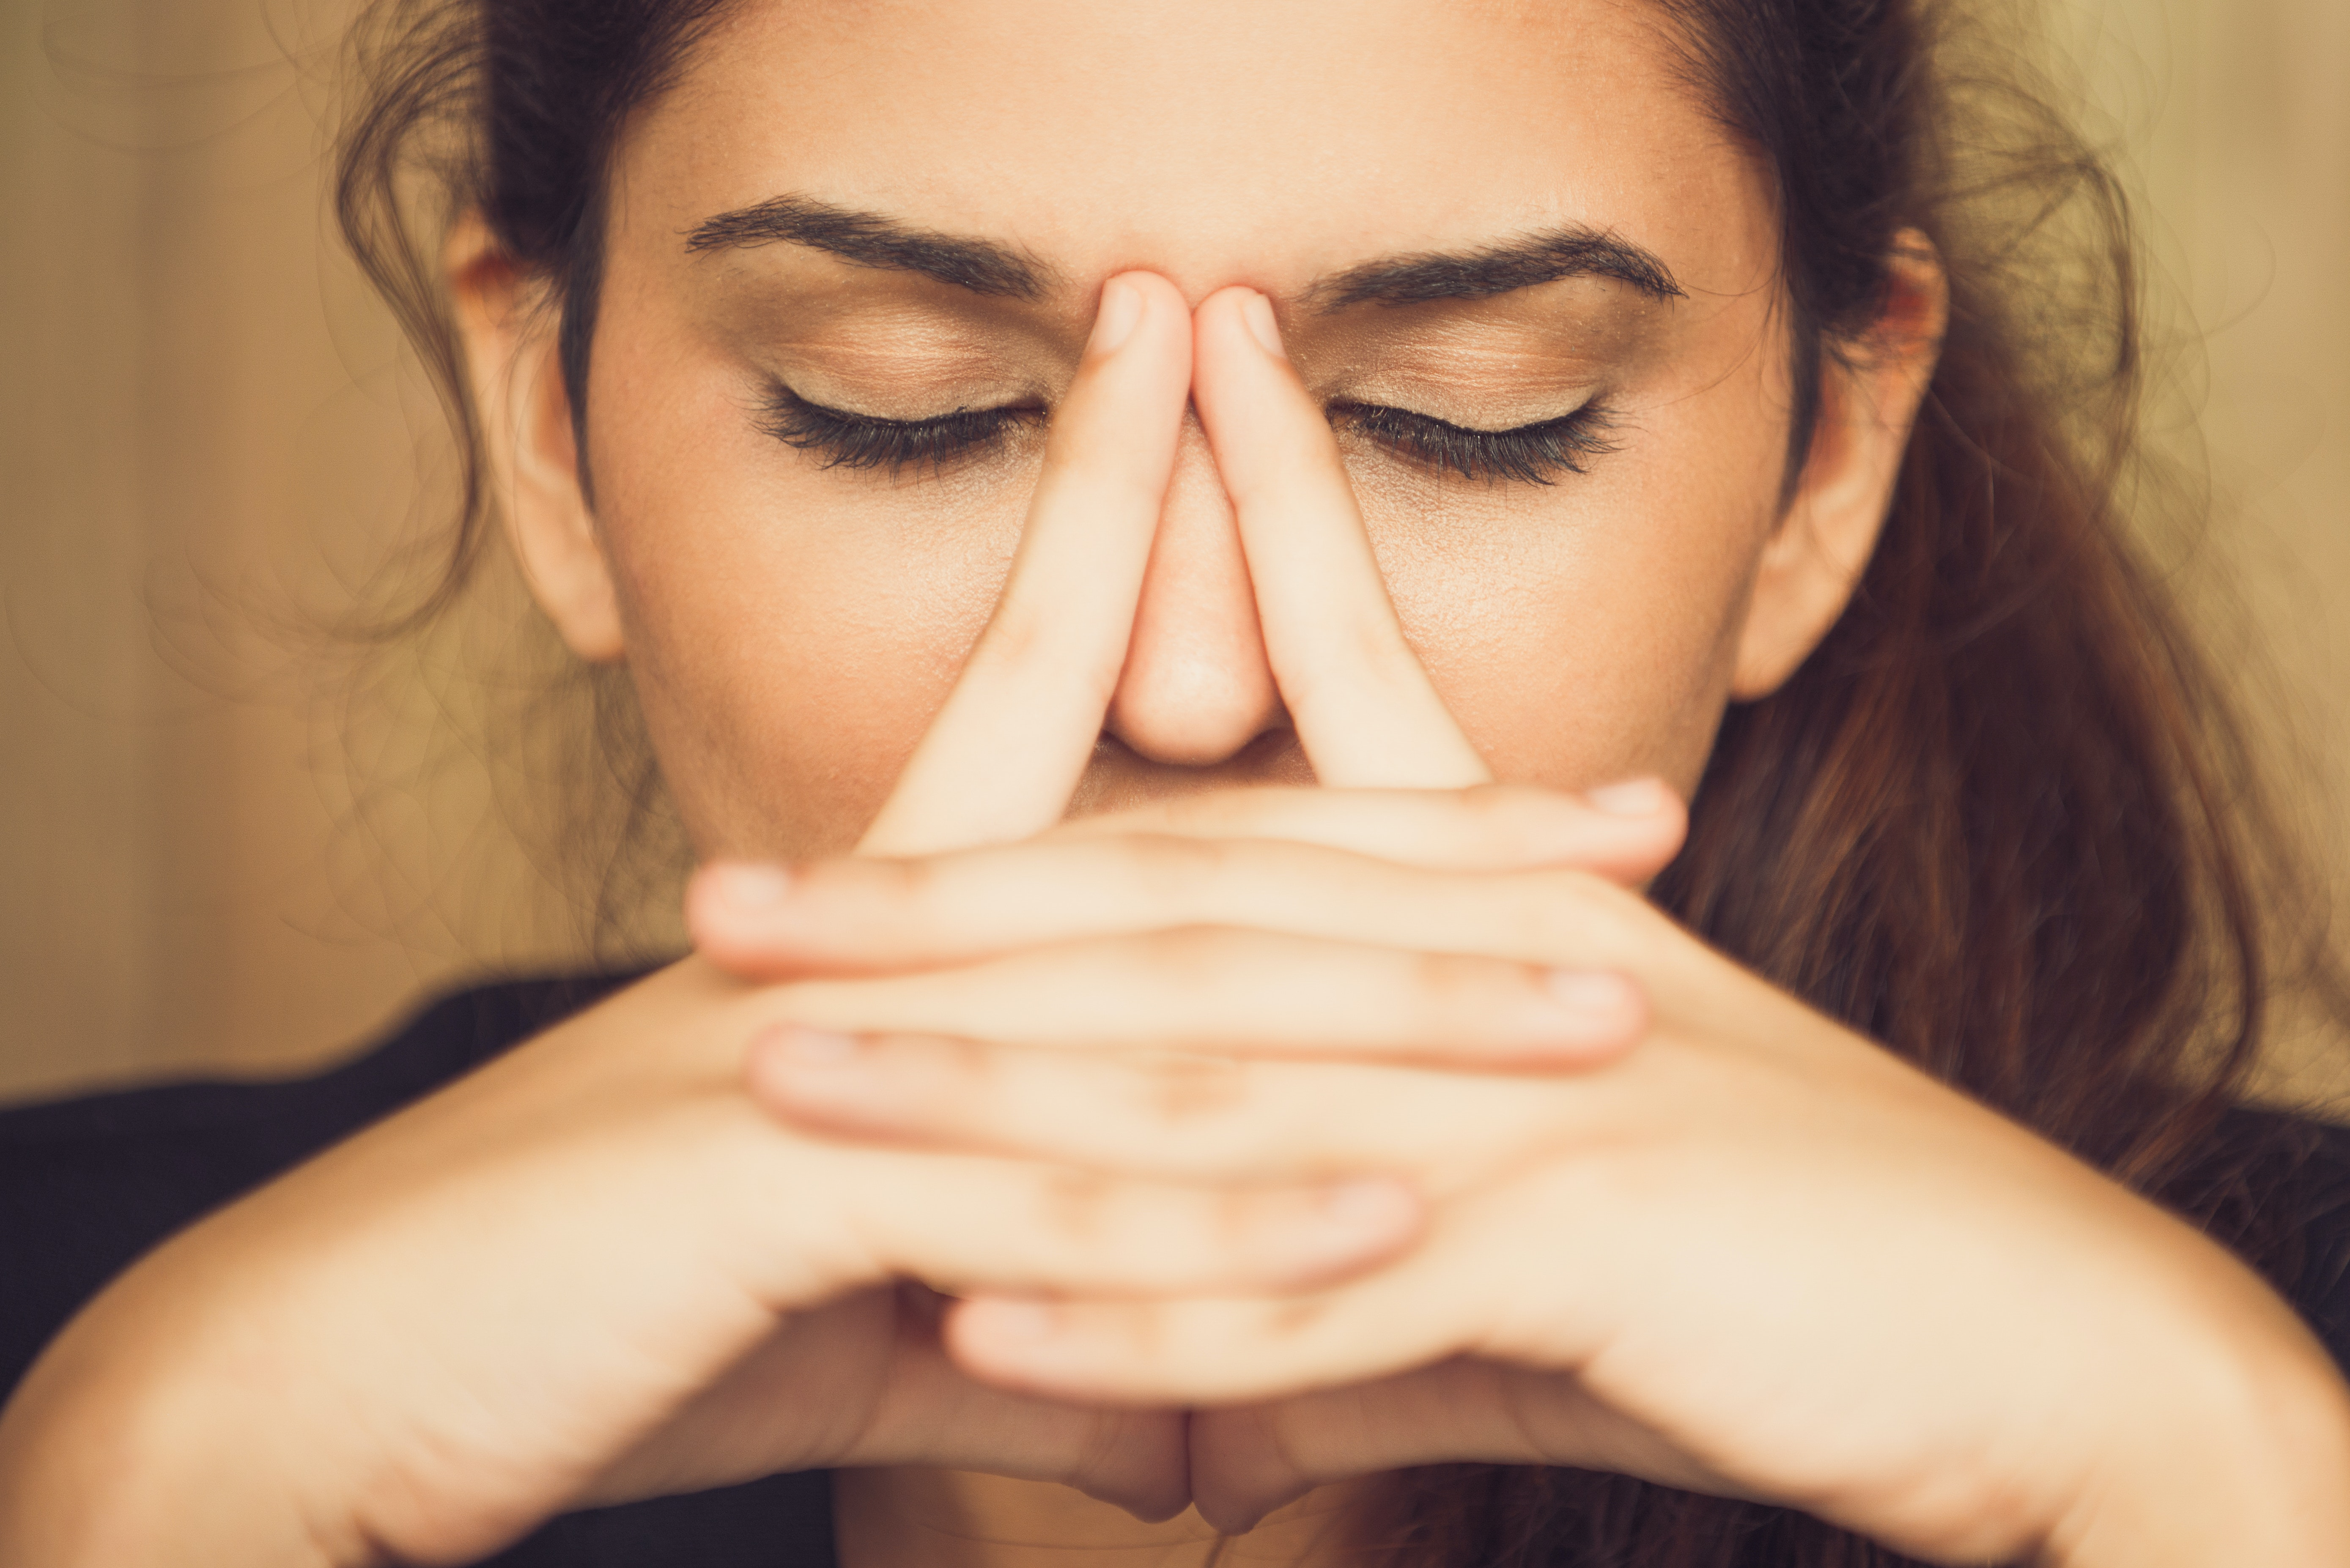 An image depicting a person suffering from mild nose pain symptoms